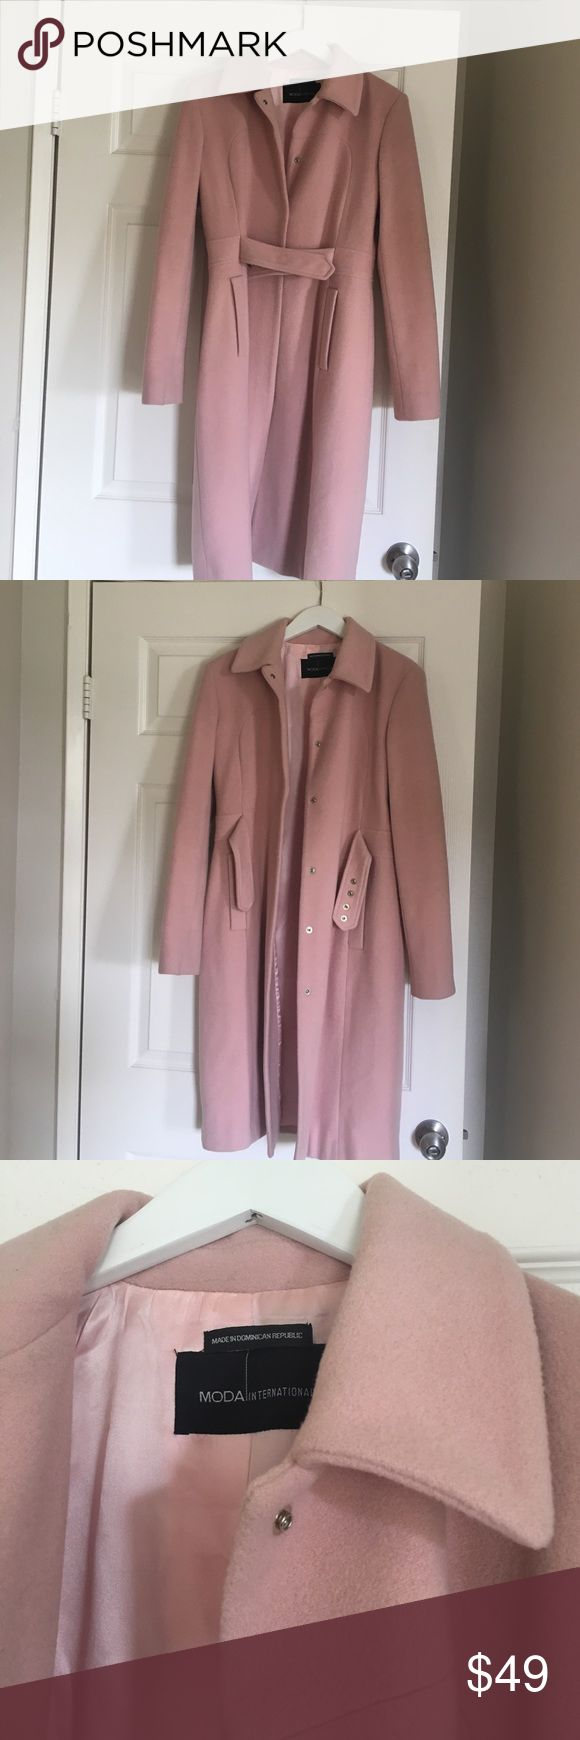 Light Pink Long Wool Coat Belted Trench Size 6 100% wool. Great for cold weather. Bought at Victorias Secret for trip to Europe. Used with some small stains - see photos. I live in Southern California mild climate so I never wear it anymore. Moda International Jackets & Coats